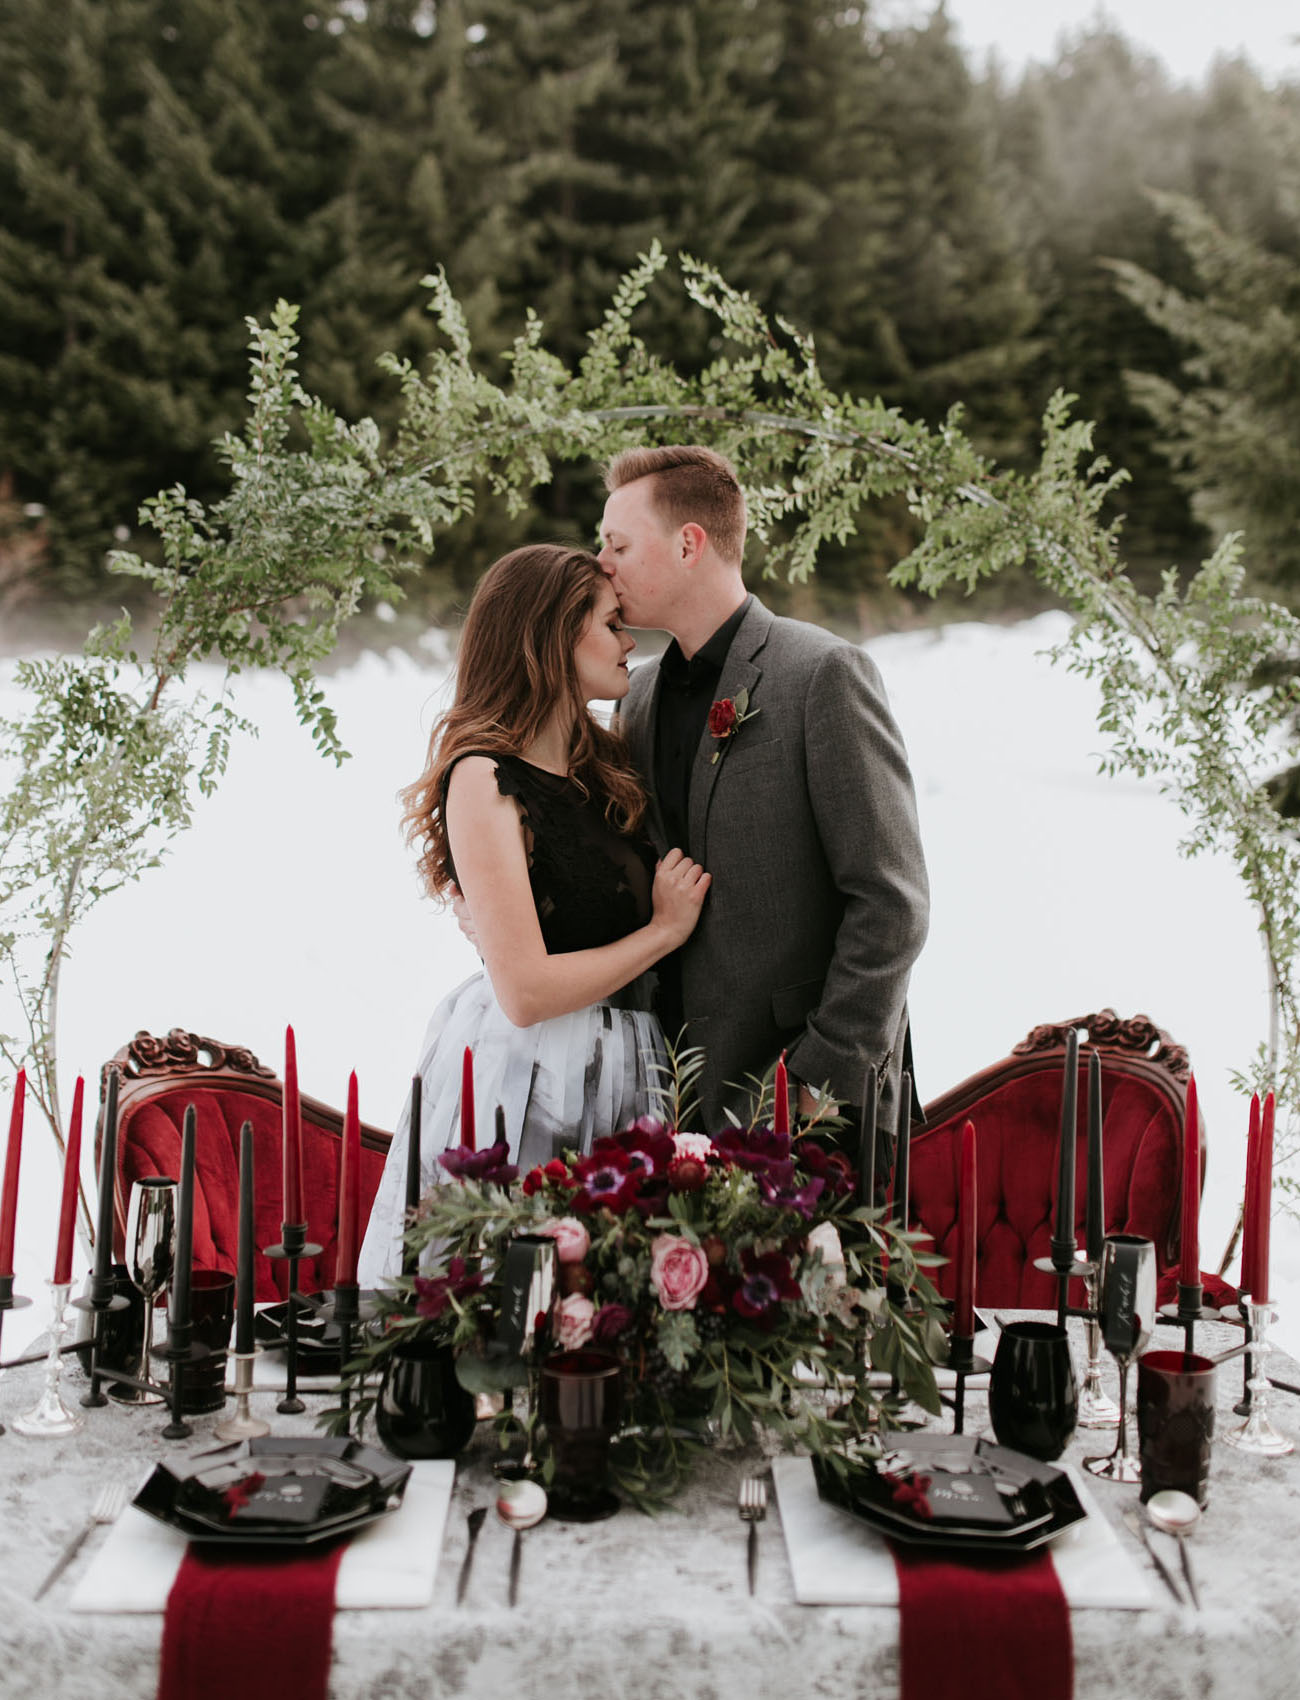 Dark Moody Winter Wedding Inspiration Dripping With